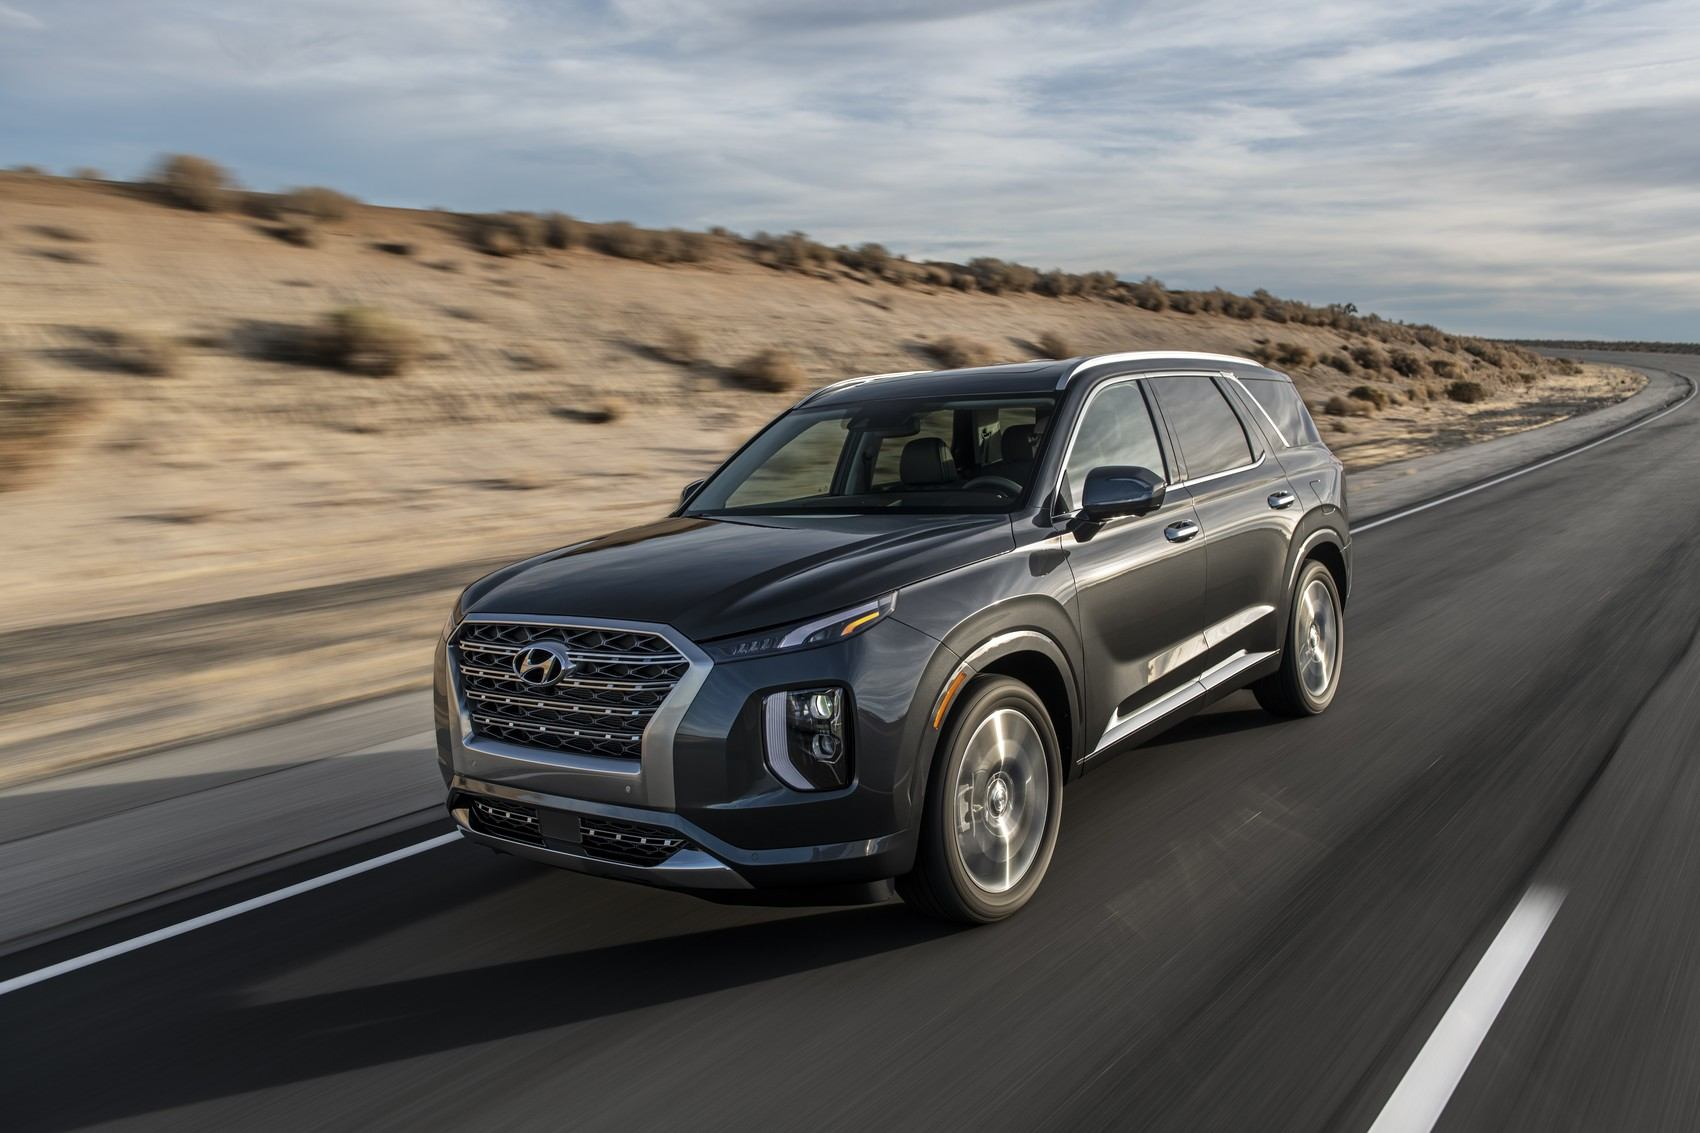 2020 Hyundai Palisade on the open road.